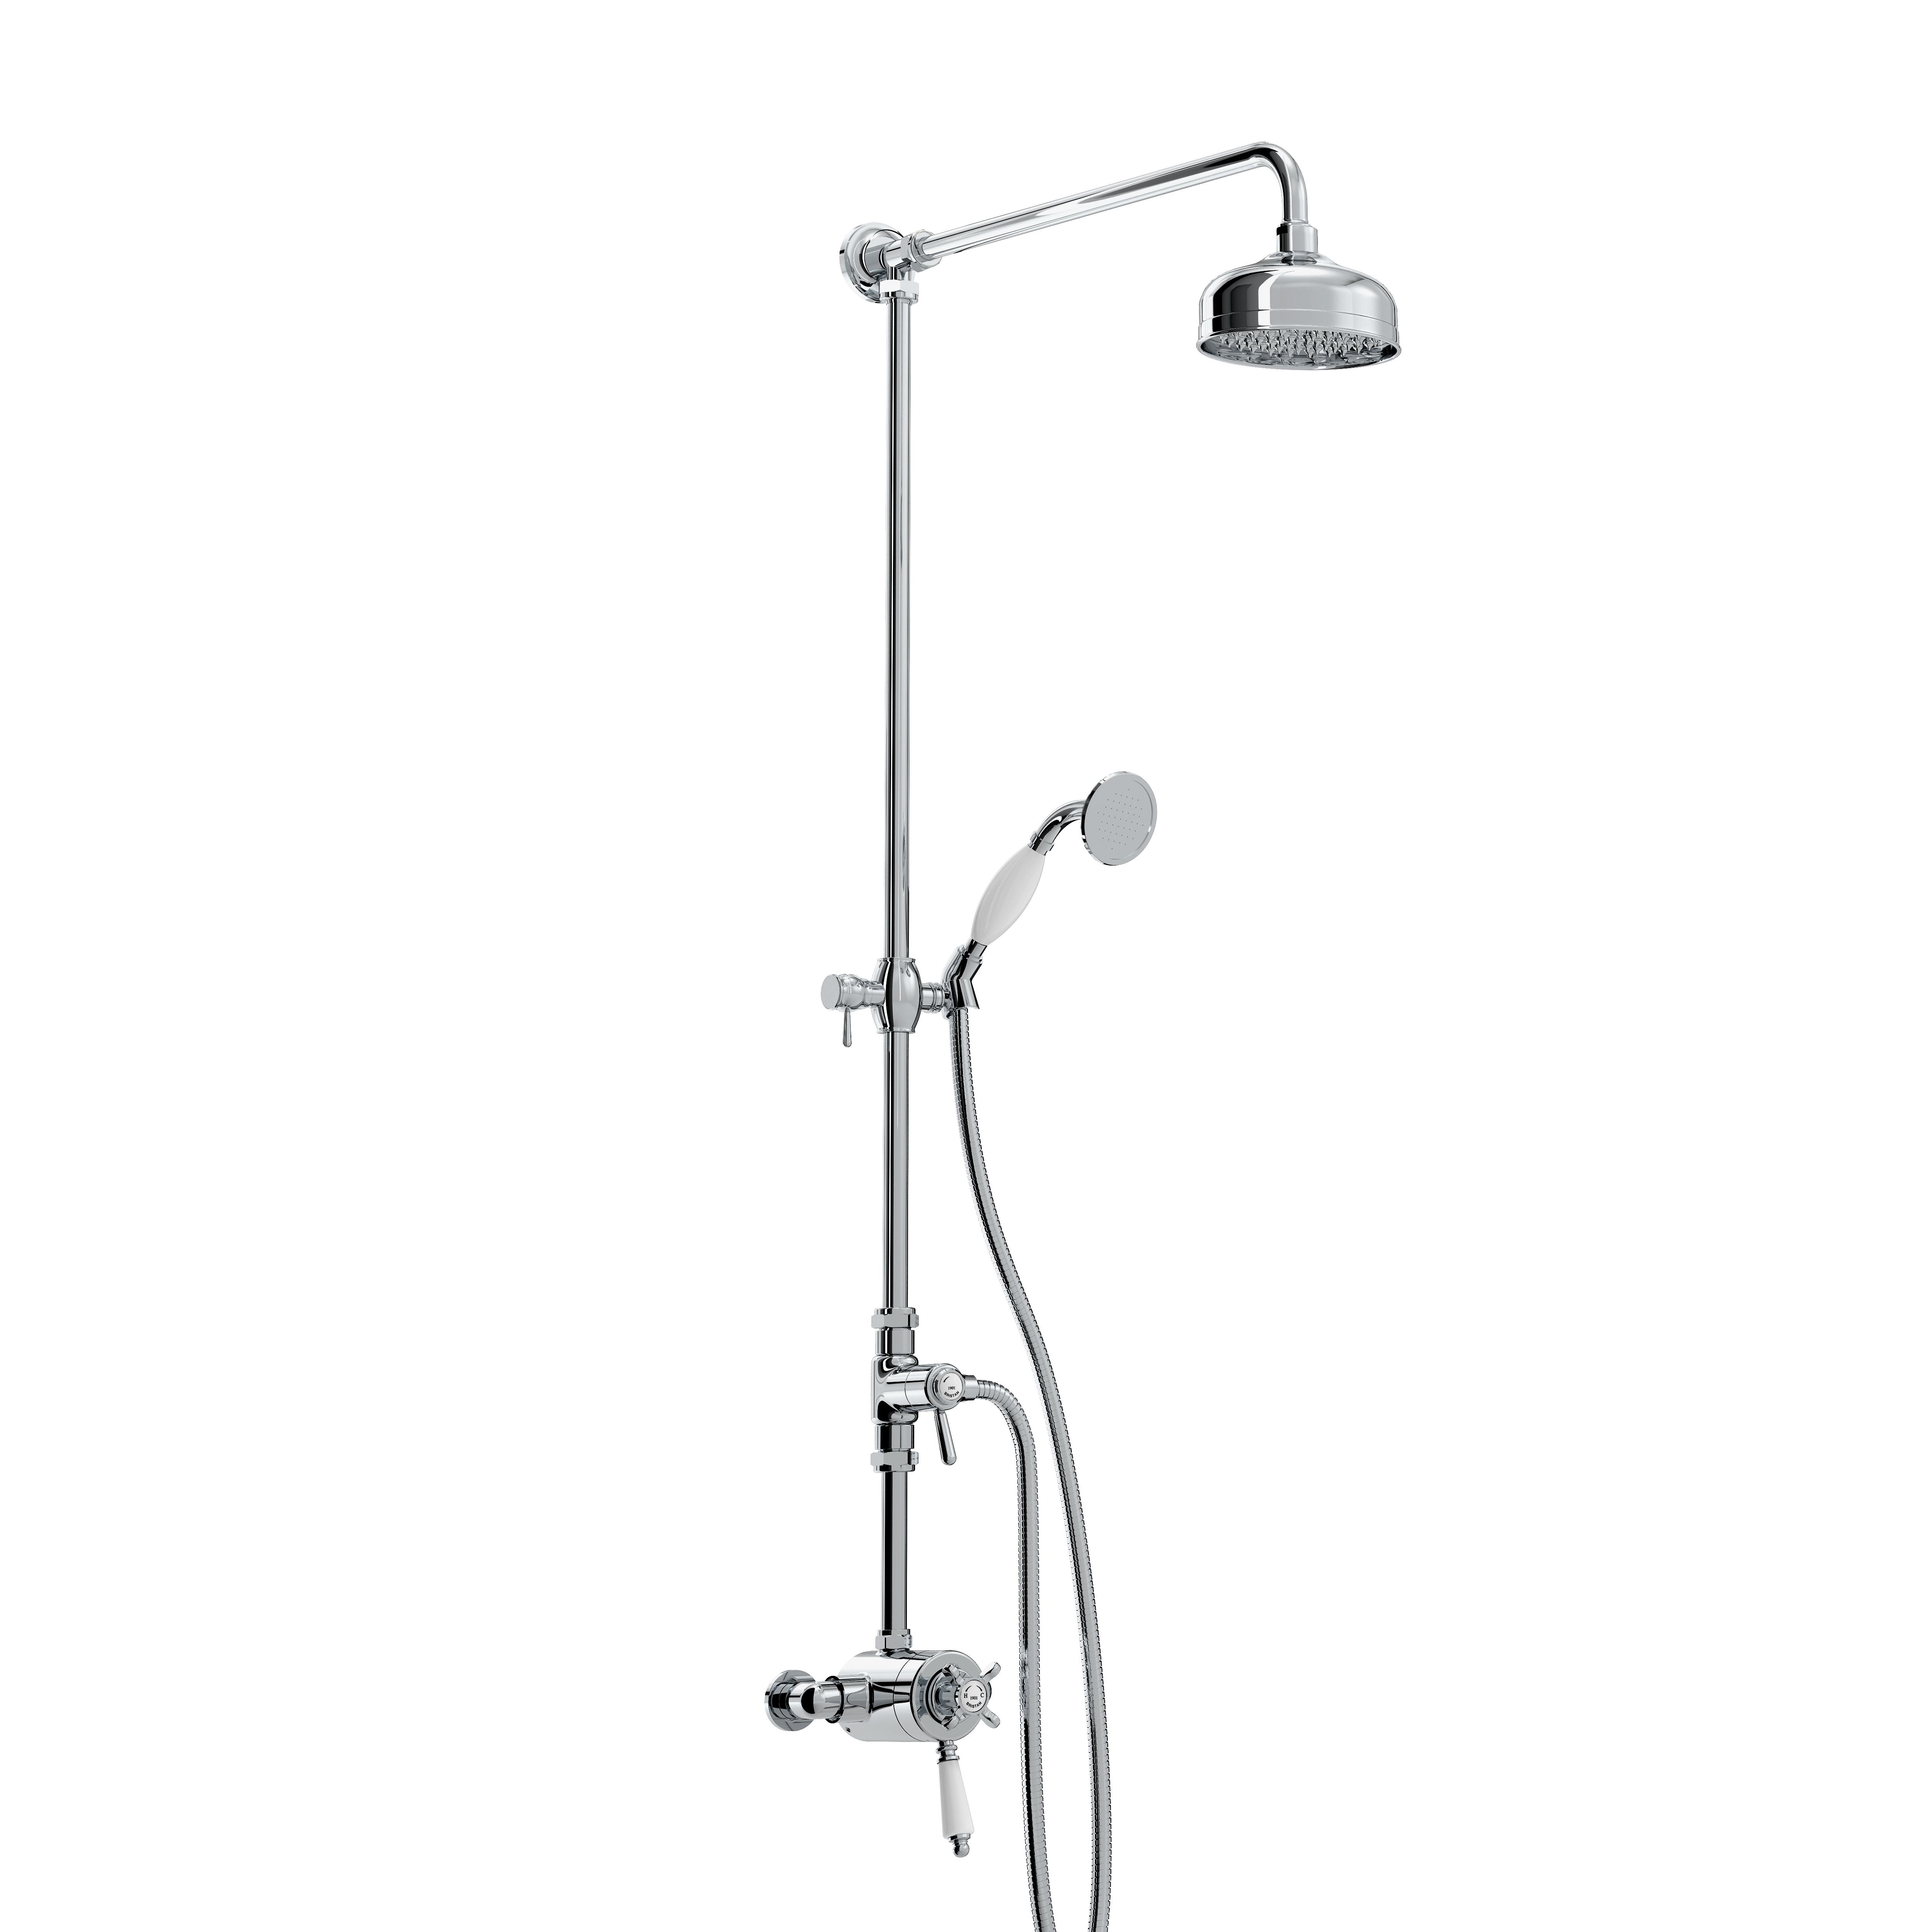 BRISTAN 1901 DUAL CONTROL THERMOSTATIC EXPOSED SHOWER VALVE - N2 CSHXDIV C